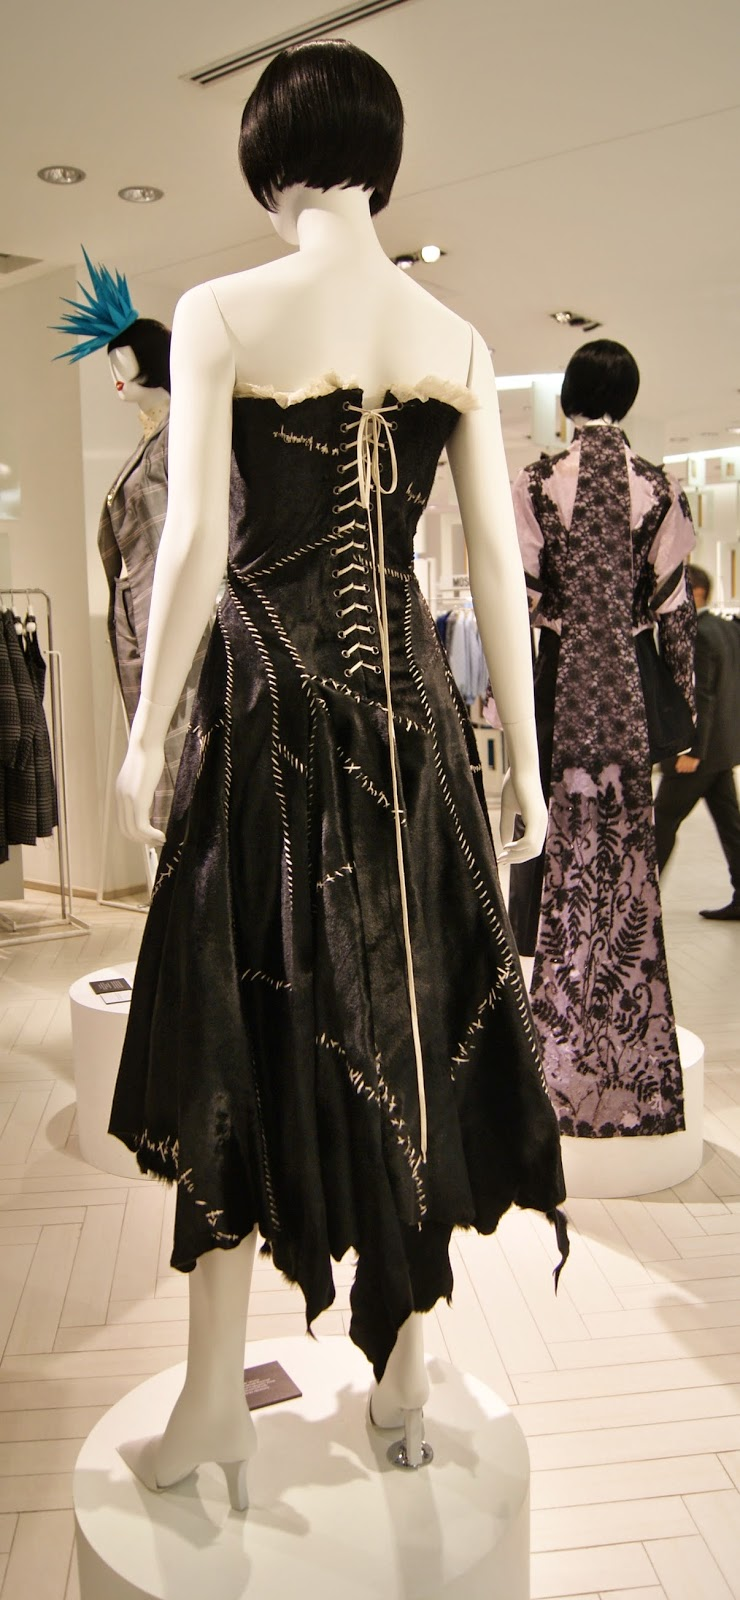 Fashion Blows Exhibit at Hudson's Bay in Toronto, Isabella, Daupne Guinness, Style, Culture, foundation, alexander mcqueen, philip treacy, suicide,the purple scarf, melanie.ps, ontario, canada, the room, cowhide dress, spring/summer, 2002